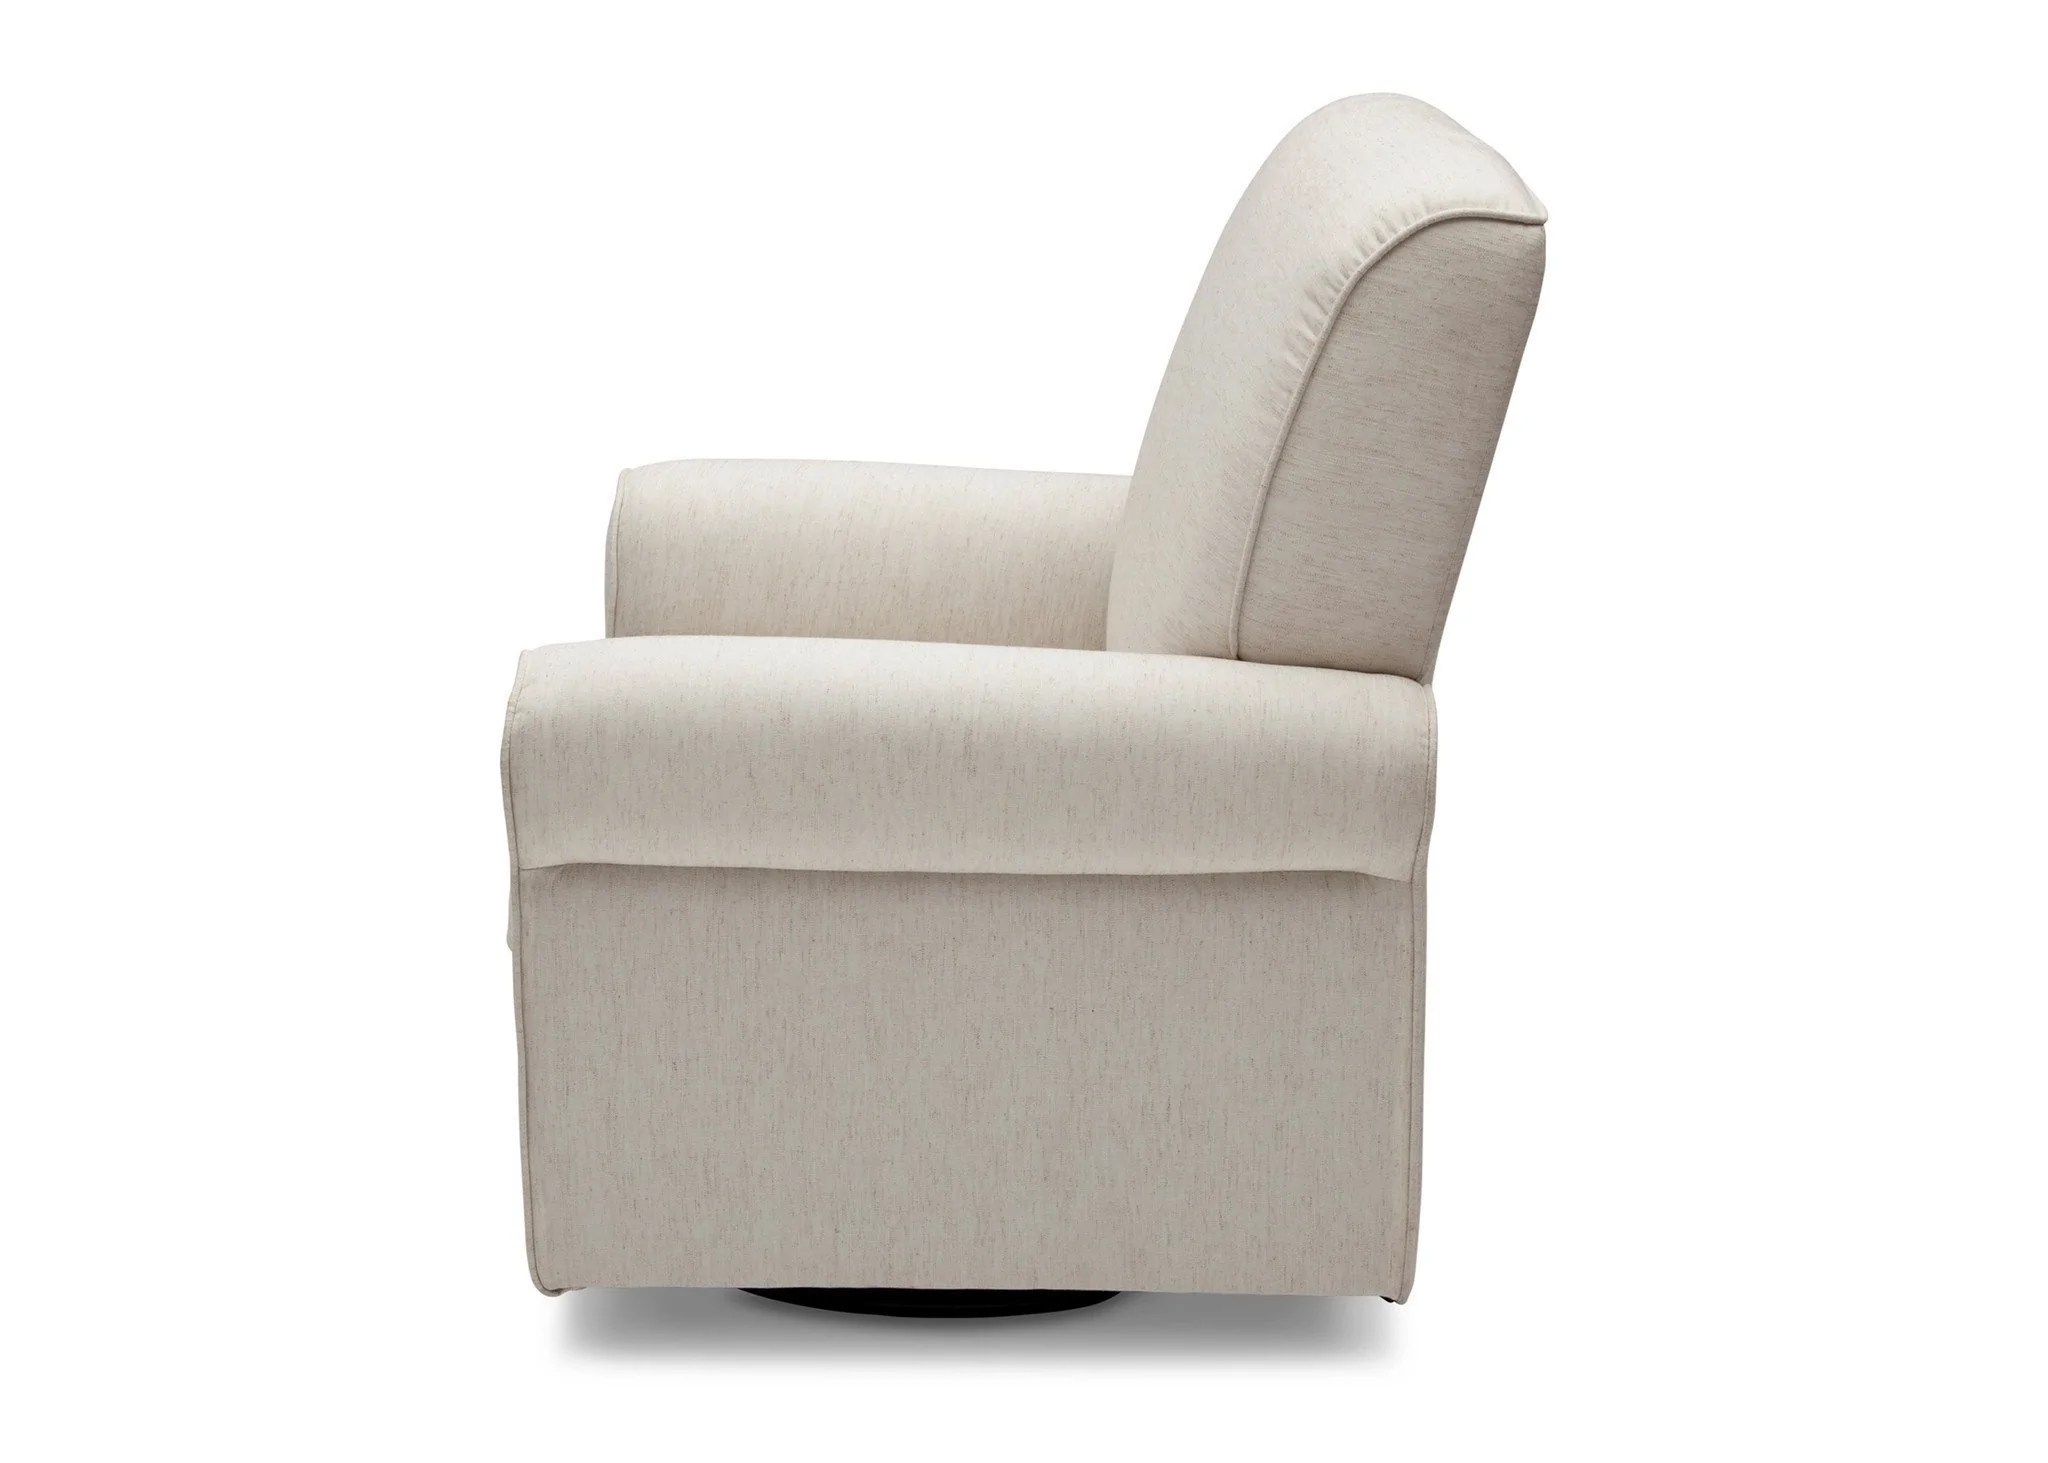 delta avery nursery glider chair grey costco lawn chairs upholstered children